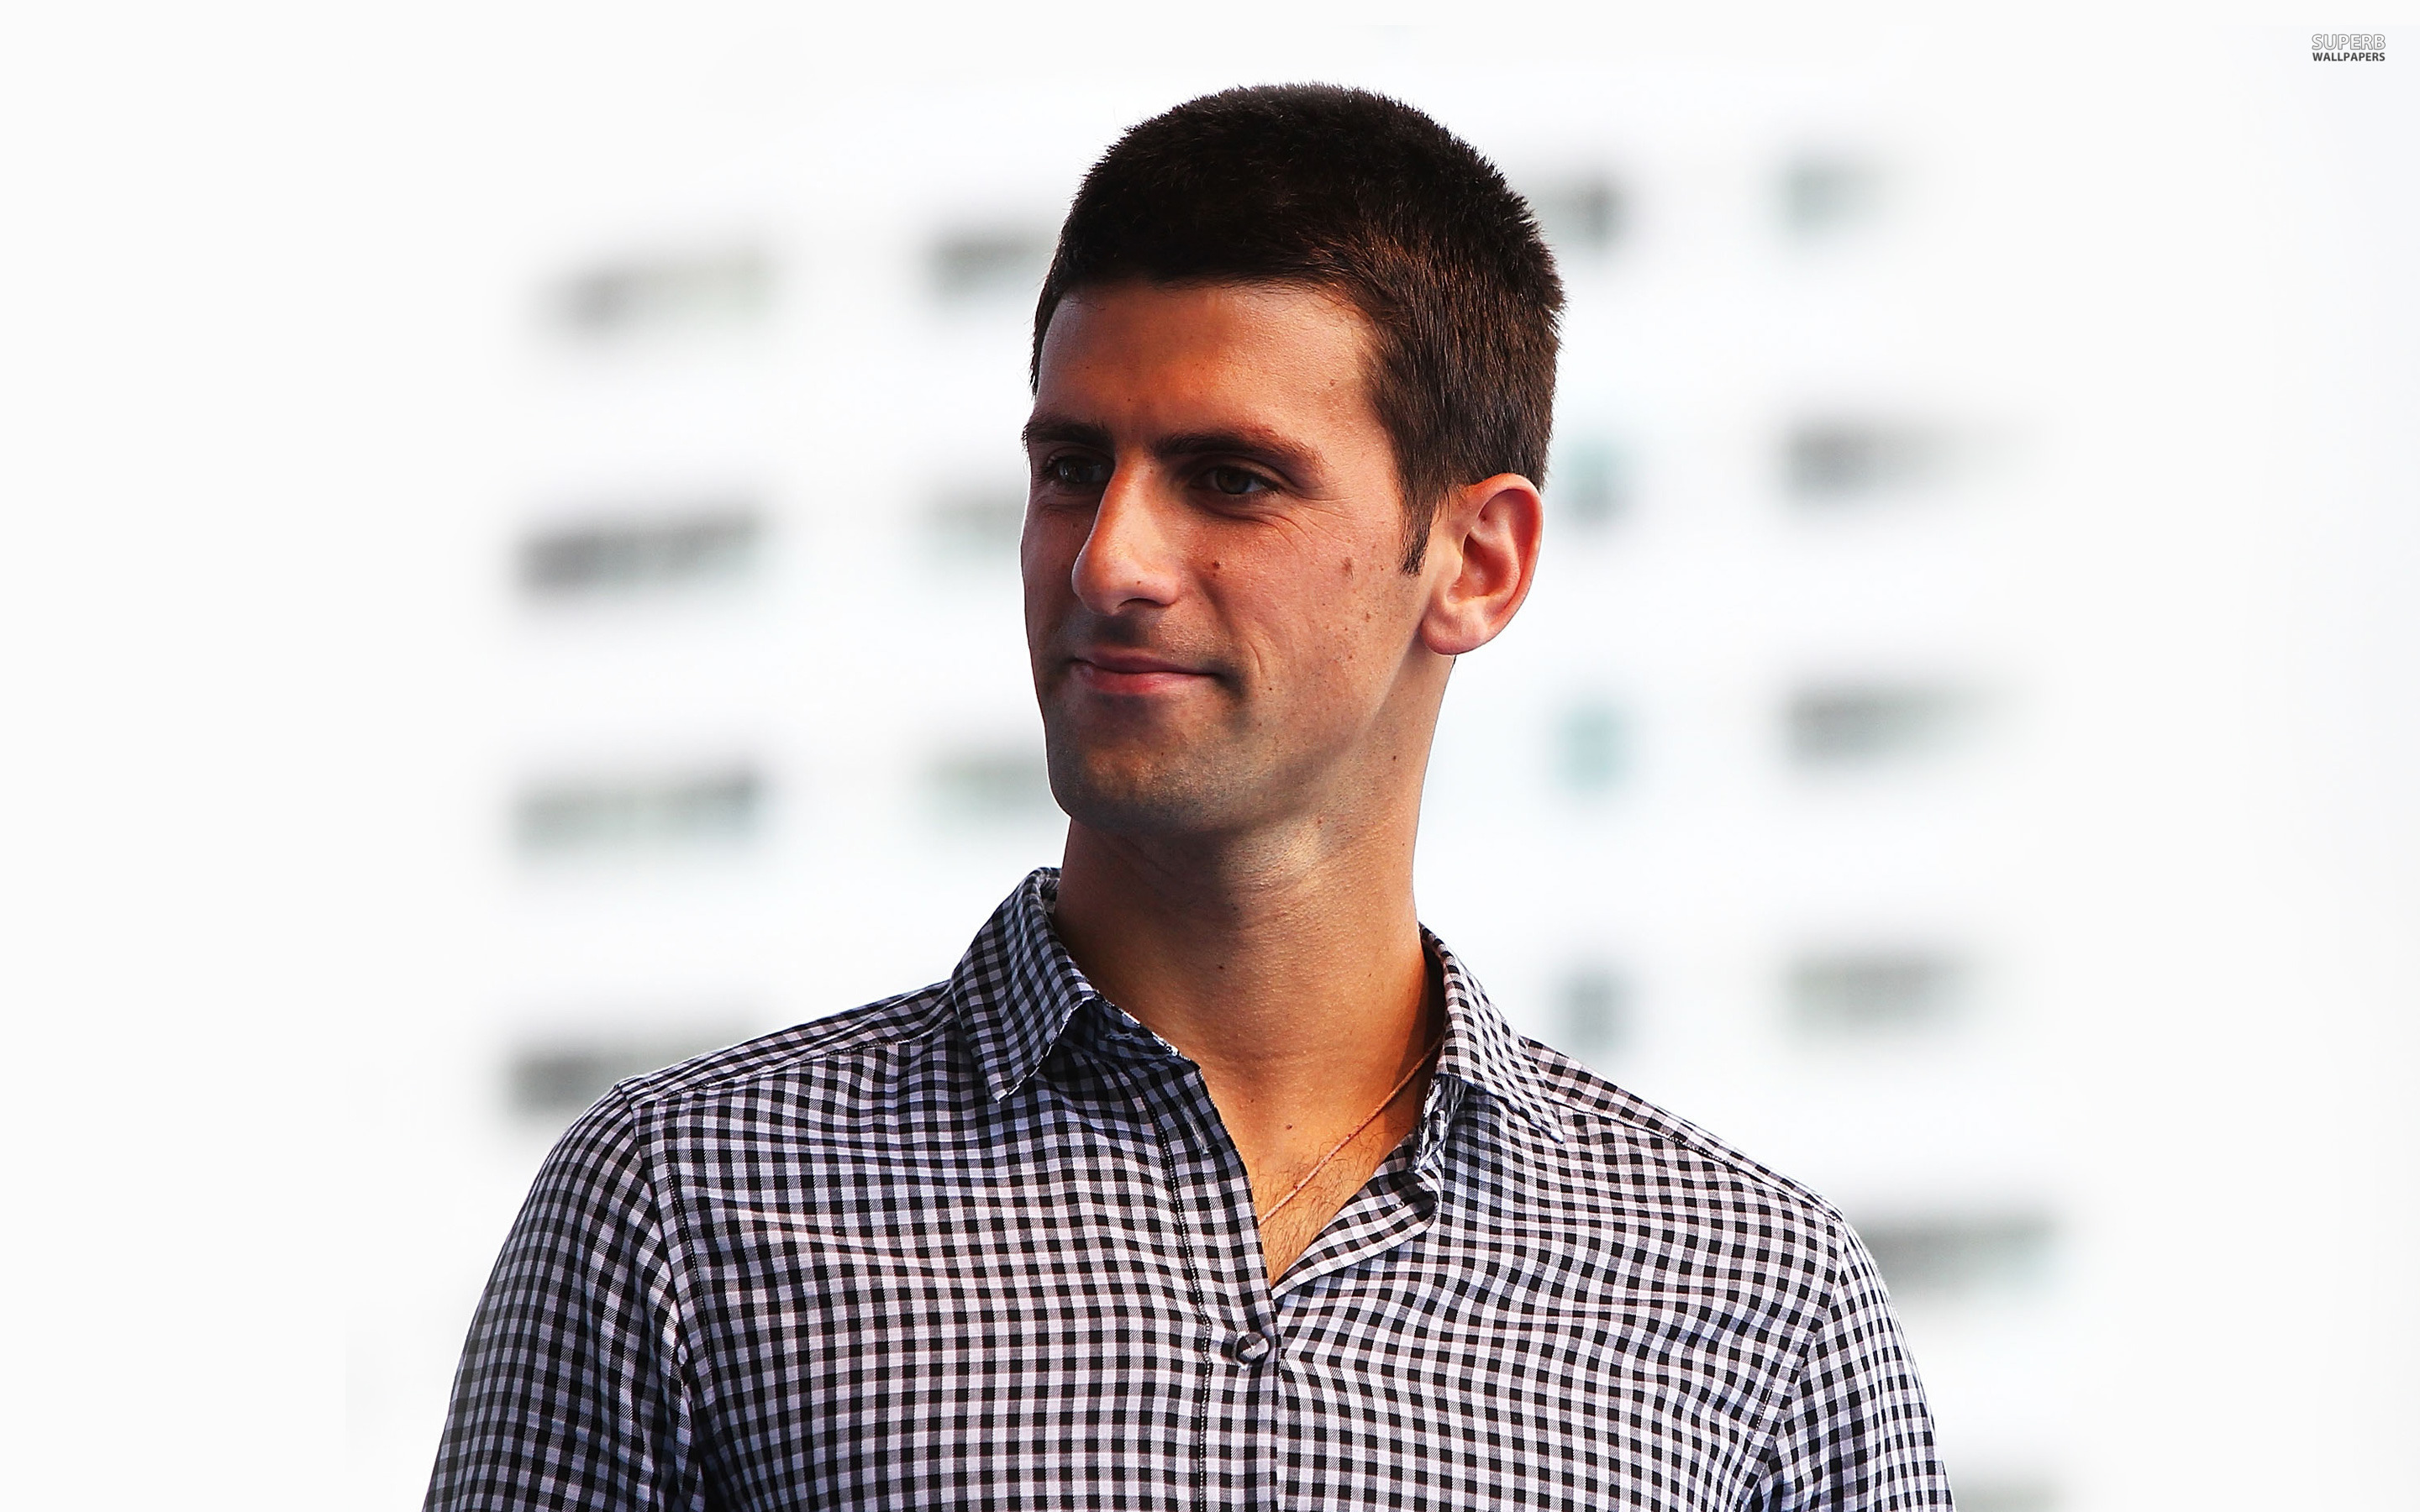 Novak Djokovic wallpaper 2880x1800 jpg